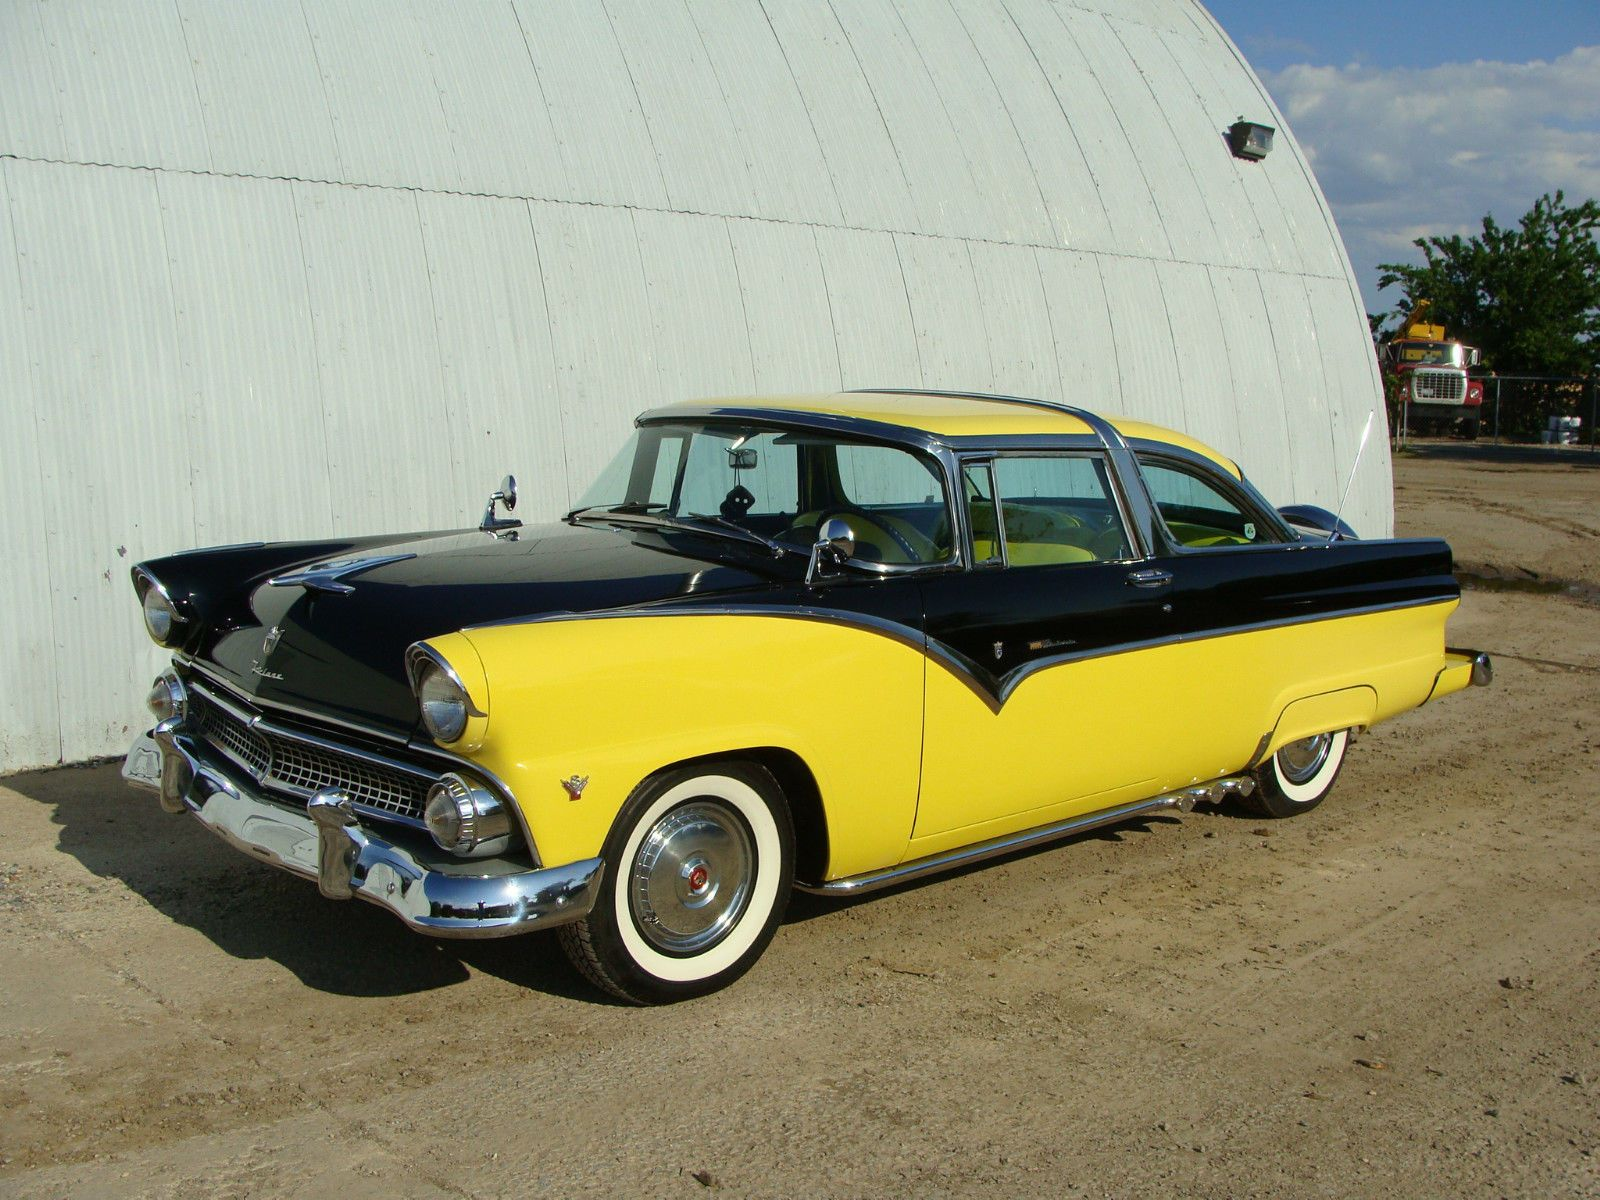 1955 ford fairlane crown victoria blog cars on line - 1956 Ford Crown Victoria For Sale 1864612 Hemmings Motor News Great Cars And Trucks Pinterest Classifieds Cars Ford And Cars